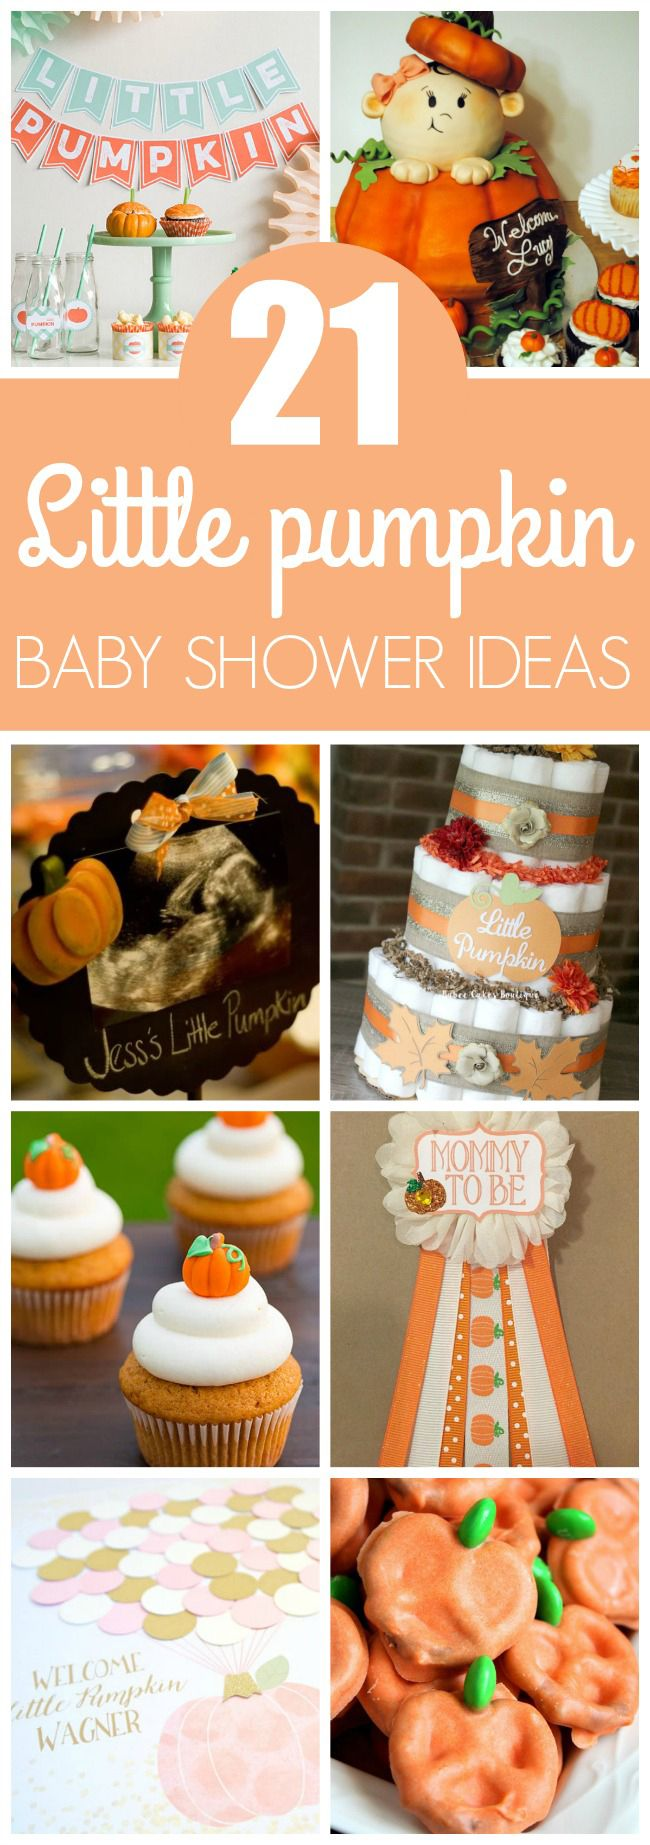 21 Little Pumpkin Baby Shower Ideas featured on Pretty My Party